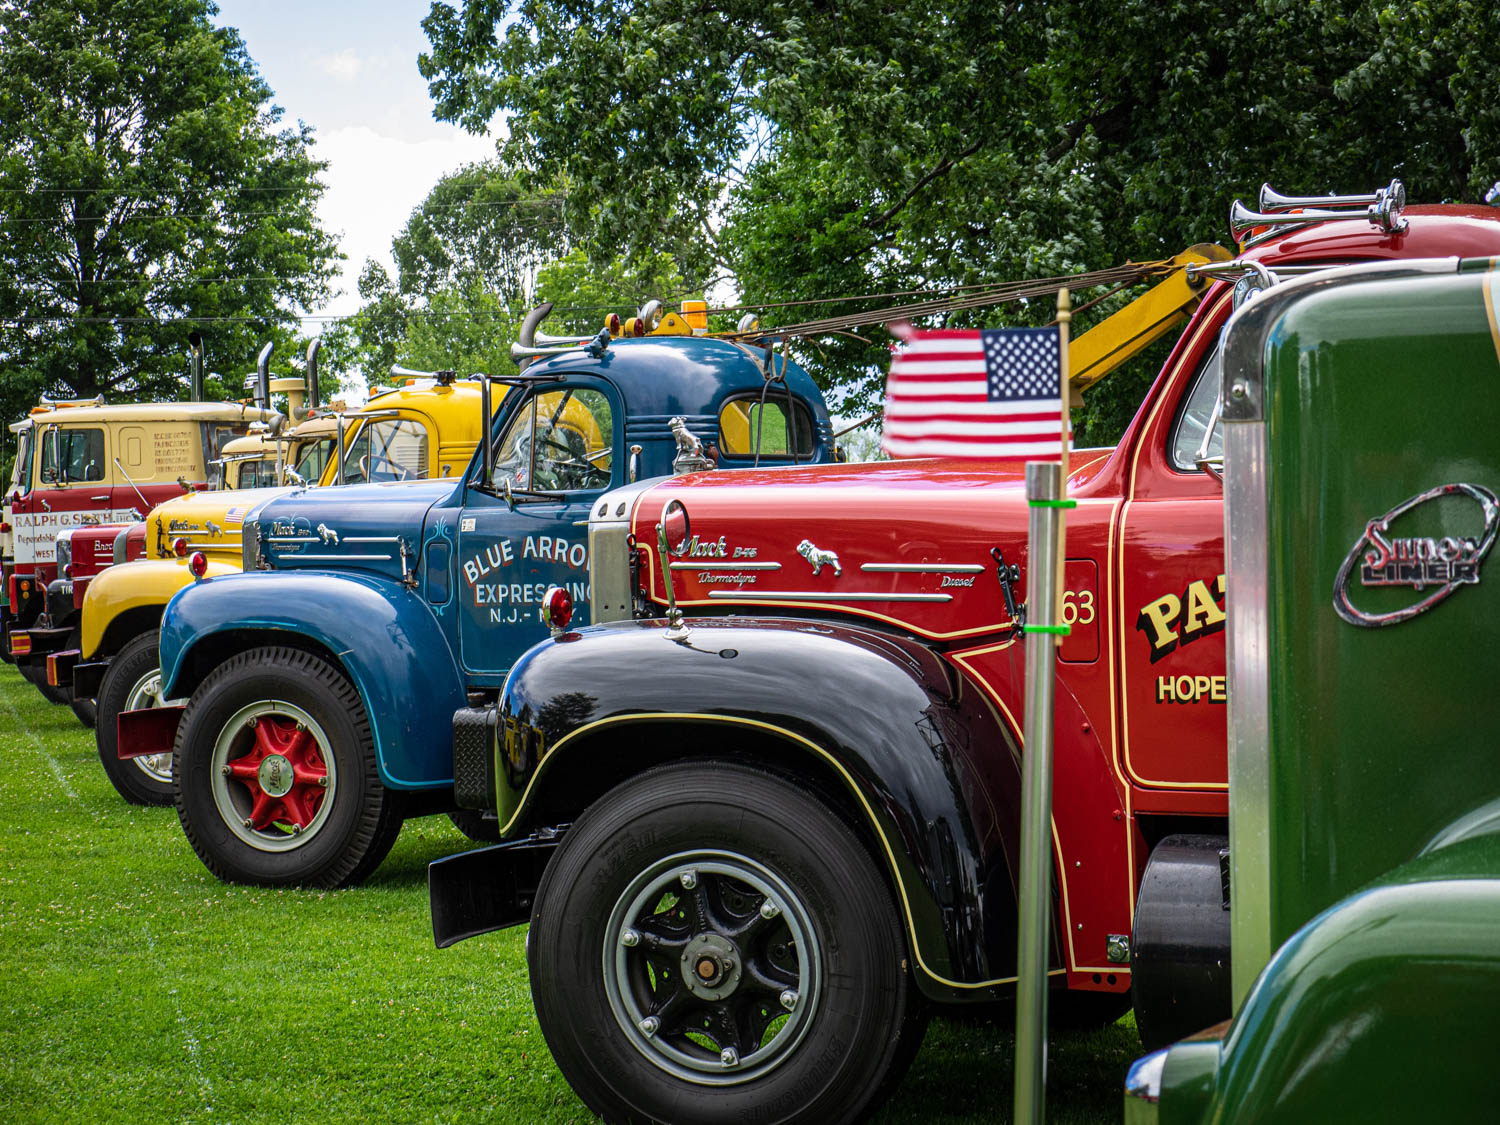 The greatest truckin' show on earth has more than 850 big rigs